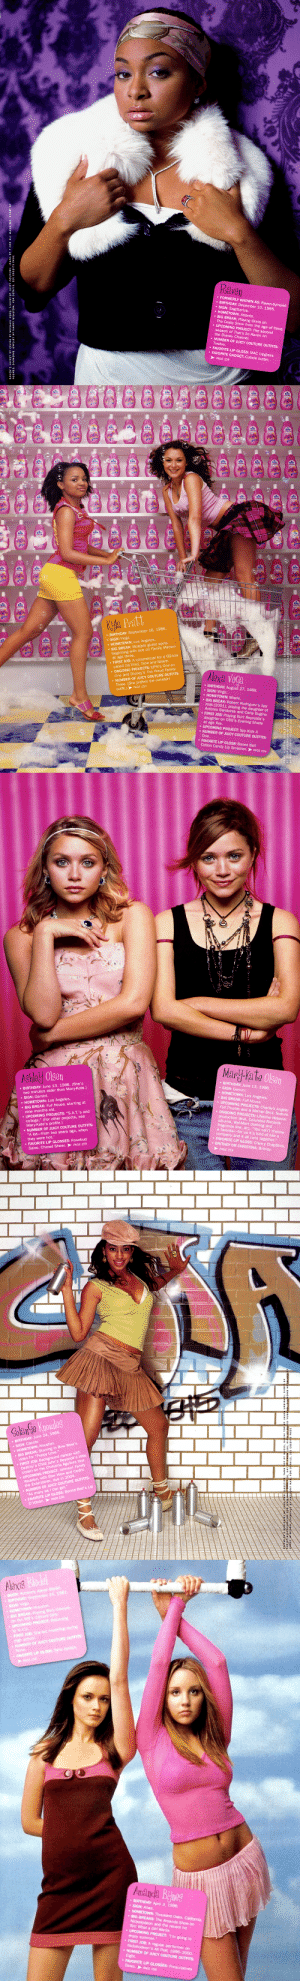 """boygirlparty:The July 2003 issue of Vanity Fair is still the bible: Raven  FORMERLY KNOWN AS: Ra  . BIRTHDAY: December 10, 1985  SIGN: Sagittarius.  HOMETOWN: Atlanta.  BIG BREAK: Playing Olivia on  The Cosby Show from the age of three  UPCOMING PROJECT: The second  season of That's So Raven on  the Disney Channel  NUMBER OF JUICY COUTURE OUTFITS:  Twelve  FAVORITE LIP GLOSS: MAC Lipglass  FAVORITE GADGET: Cuticle cutter   Kyla Peatt  BIRTHDAY: September 16, 1986  SIGN: Virgo.. L  HOMETOWN: Los Angeles.  BIG BREAK: Multiple guest spots  Lils  beginning with one o  at age three  Family Matters  called Da Vinci, Time and Space.  ONGOING PROJECTS: UPN's One on  One and Disney's The Proud Family  NUMBER OF JUICY COUTURE OUTFITS:  FIRST JOB: A commercial for a CD-ROM  Three. (She prefers the miniskirt  outfit.)PAGE 159  BIRTHDAY: August 27, 1988.  . SIGN: Virgo.  HOMETOWN: Miami  BIG BREAK: Robert Rodriguez's Spy  Kids (2001), playing the daughter of  Antonio Banderas and Carla Gugino.  FIRST JOB: Playing Burt Reynolds's  daughter on CBS's Evening Shade  five  UPCOMING PROJECT: Spy Kids 3.  NUMBER OF JUICY COUTURE OUTFITS:  FAVORITE LIP GLOSS: Bonne Bell  Cotton Candy Lip Smacker. PAGE 159   Ashley Olsen  Marly-Ma te  Ols  en  BIRTHDAY June 13, 1986  . SIGN: Gemini,  two minutes older than Mary-Kate.)  SIGN: Gemini  HOMETOWN: Los Angeles  . BIRTHDAY: June 13, 1986. (She's  HOMETOWN: Los Angeles  BIG BREAK: Full House, starting at  nine months old  UPCOMING PROJECTS."""" SA.Т.'s and  college."""" (For other projects, see  Mary-Kate's profile.)  NUMBER OF JUICY COUTURE OUTFITS:  """"A lot-from two years ago, when  they were hot.  FAVORITE LI  BIG BREAK: Full House.  UPCOMING PROJECTS: Charlie's Angels:  Full Throttle and a Warner Bros. feature  ONGOING PROJECTS: Lifetime Network  production deal, Columbia Records  albums, Wal-Mart clothing and  fragrance line, etc. """"You can't choose  a favorite-for us it's kind of like a  company and it all runs together  FAVORITE LIP GLOSS: Cherry"""